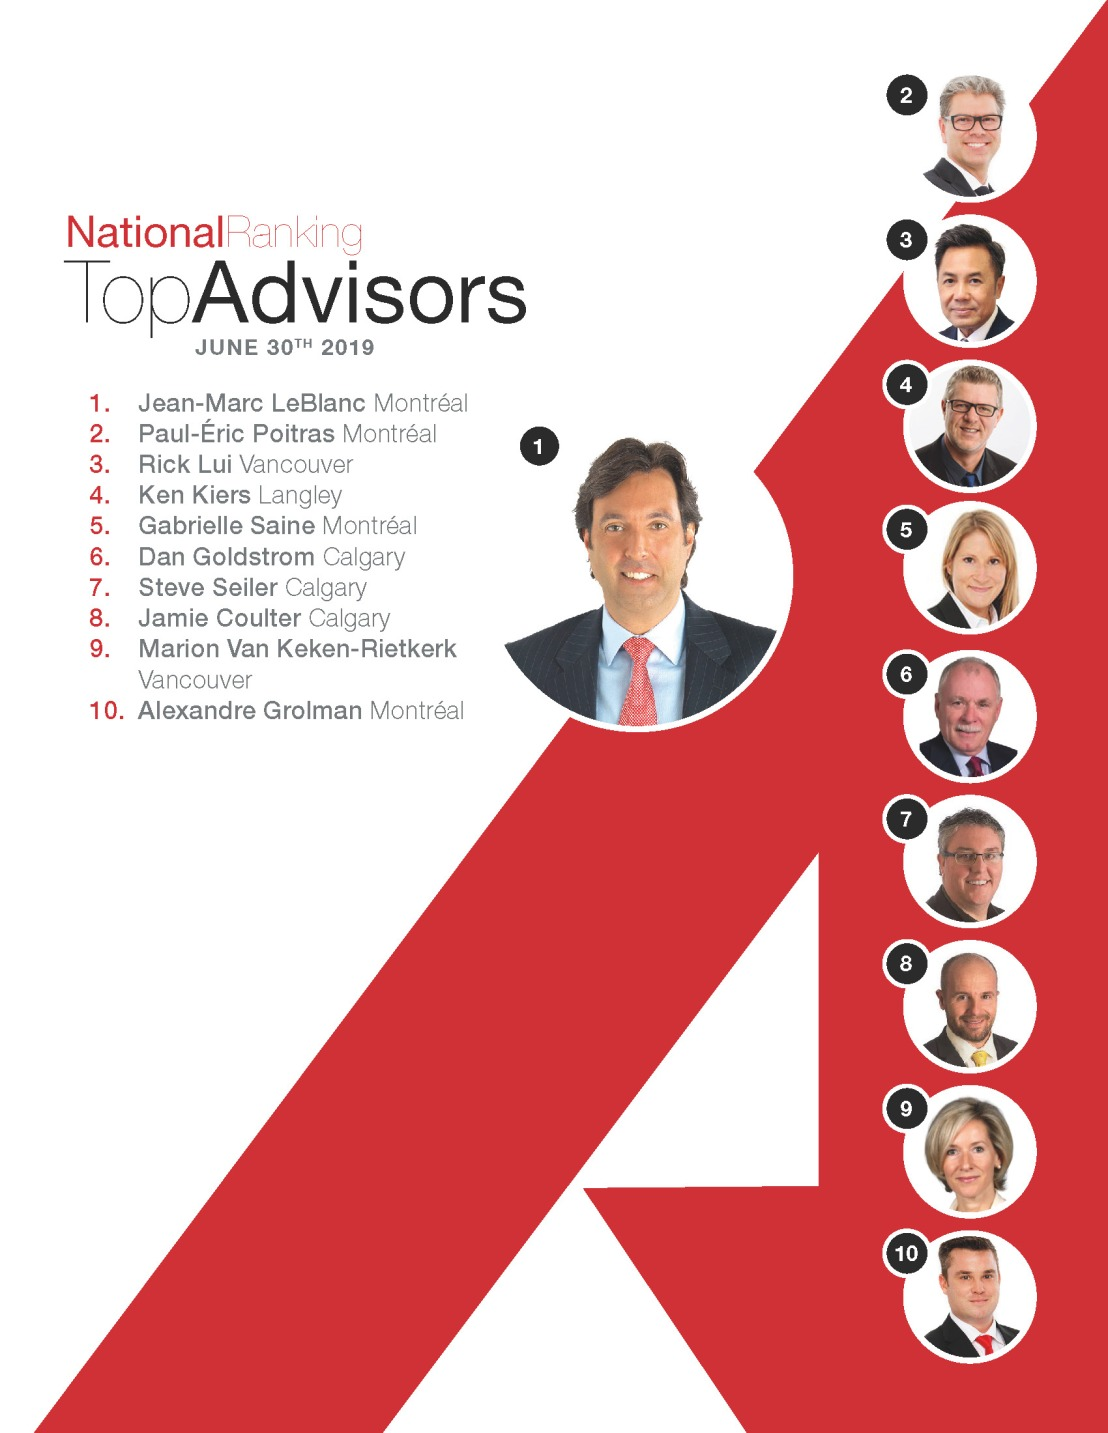 National-Top10Advisors-June2019.jpg